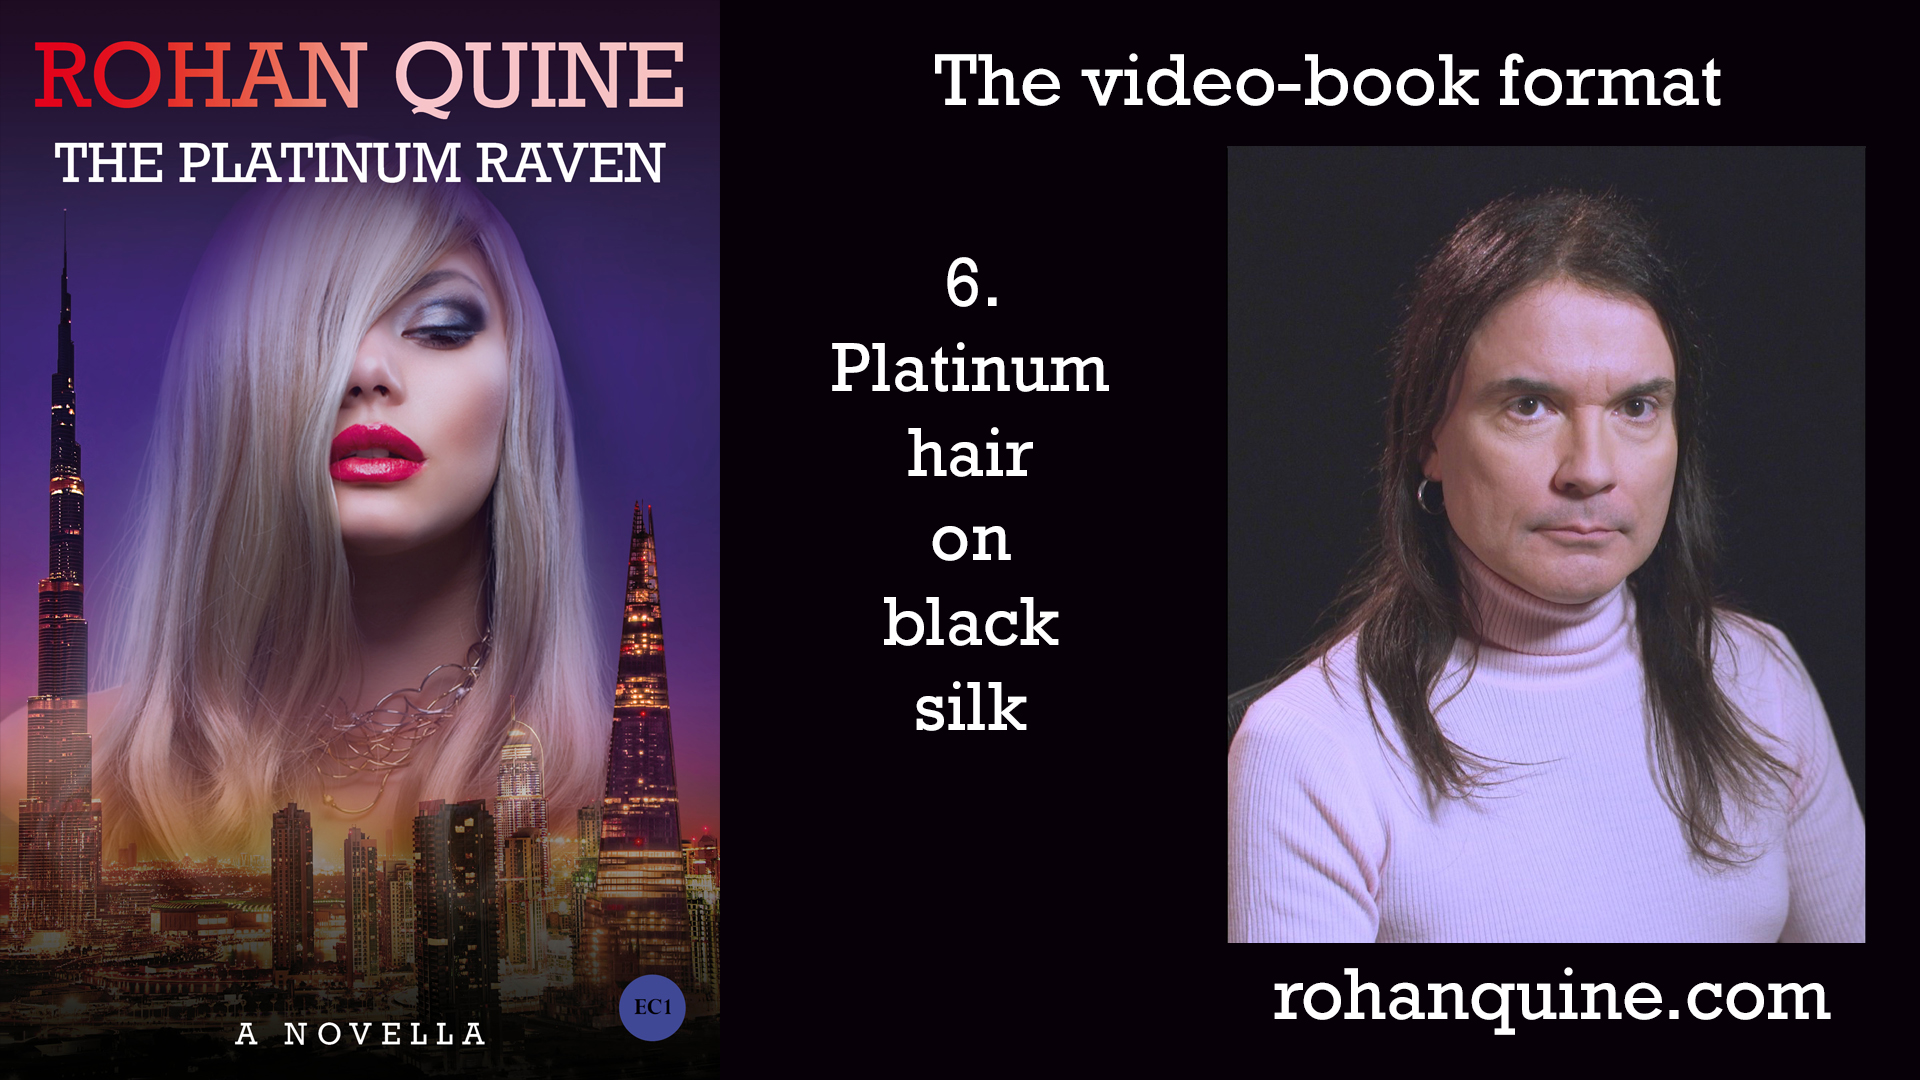 THE PLATINUM RAVEN by Rohan Quine - video-book format - chapter 6